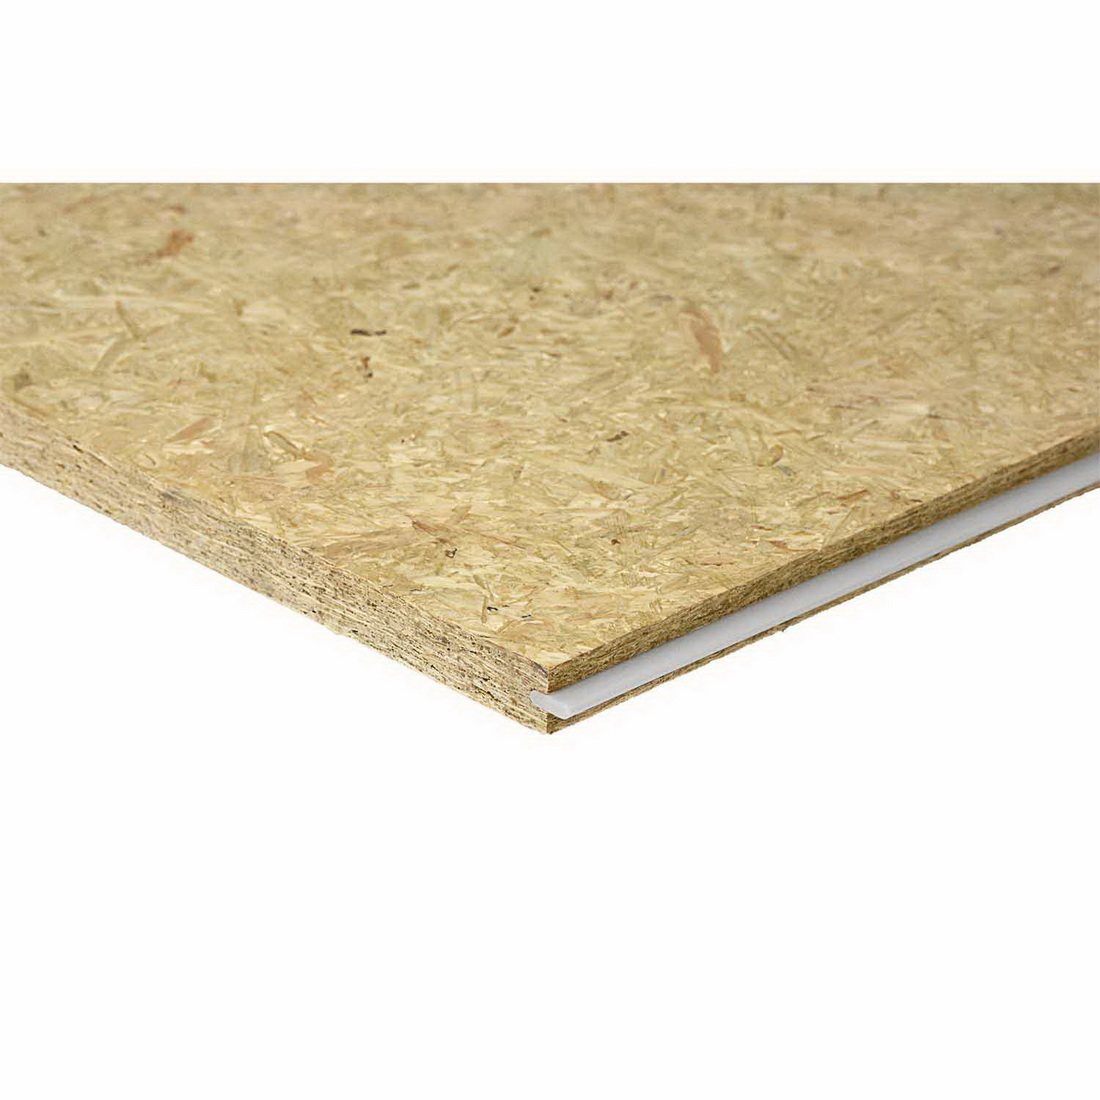 Laminex Strandfloor High density Reconstituted Tongue & Groove Wood Panel 2400 x 1200 x 20mm Untreated 8519982